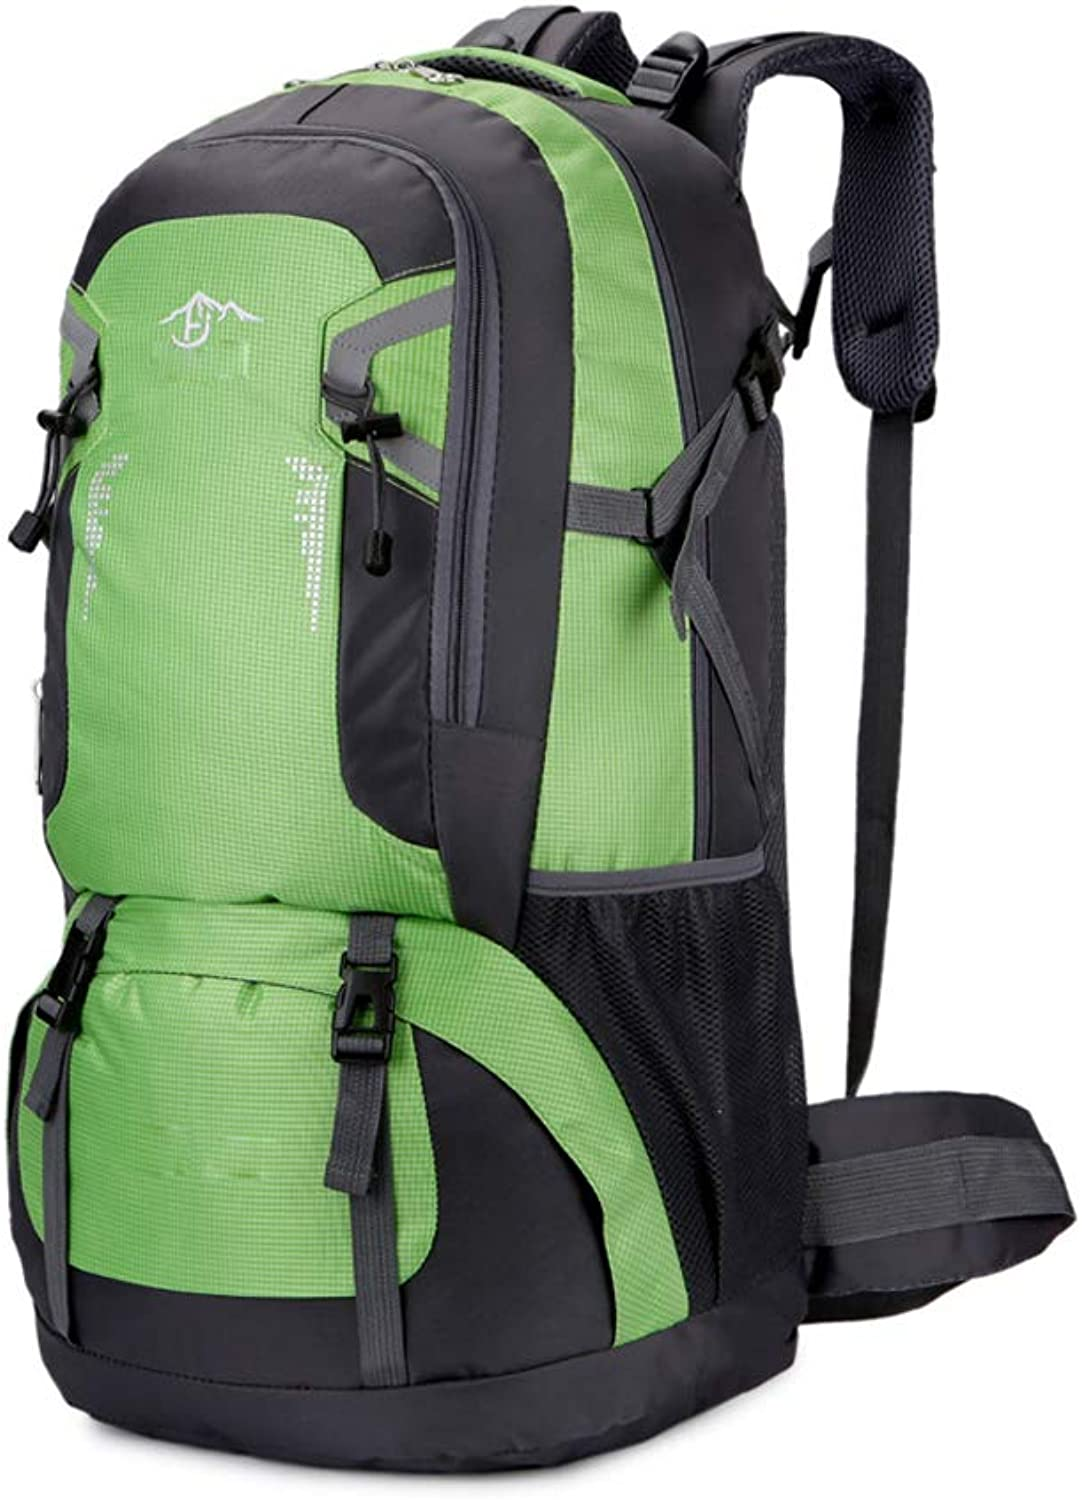 Waterproof Travel Hiking Backpack, Outdoor Camping Travel Bag Trekking Climbing Bag Rucksack 40L,Green